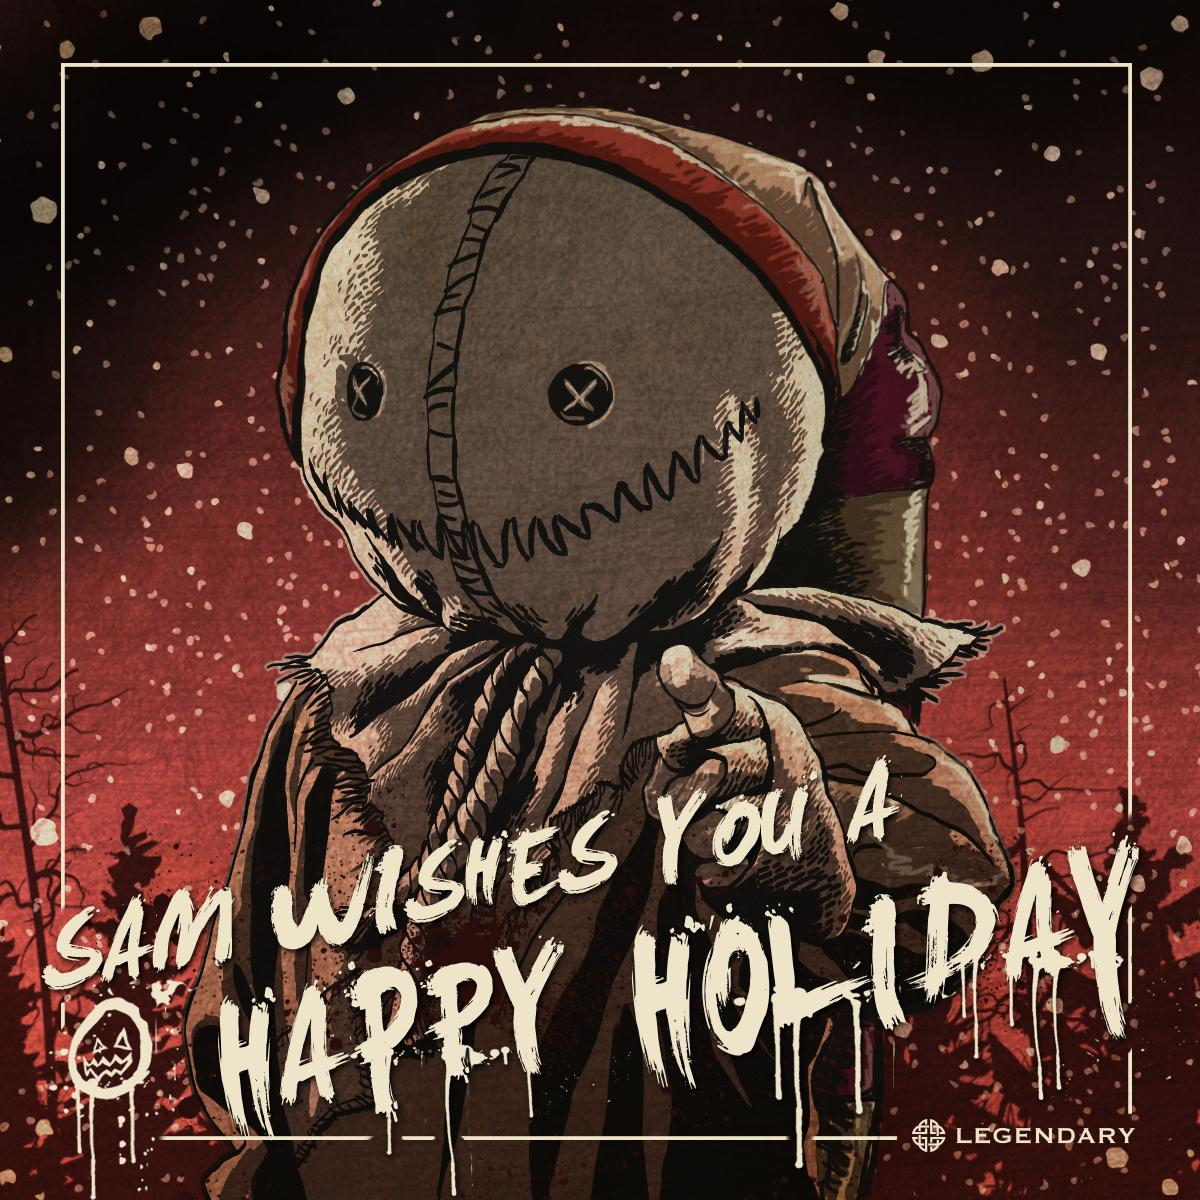 Happy Holidays! http://t.co/zmvUq19aqf